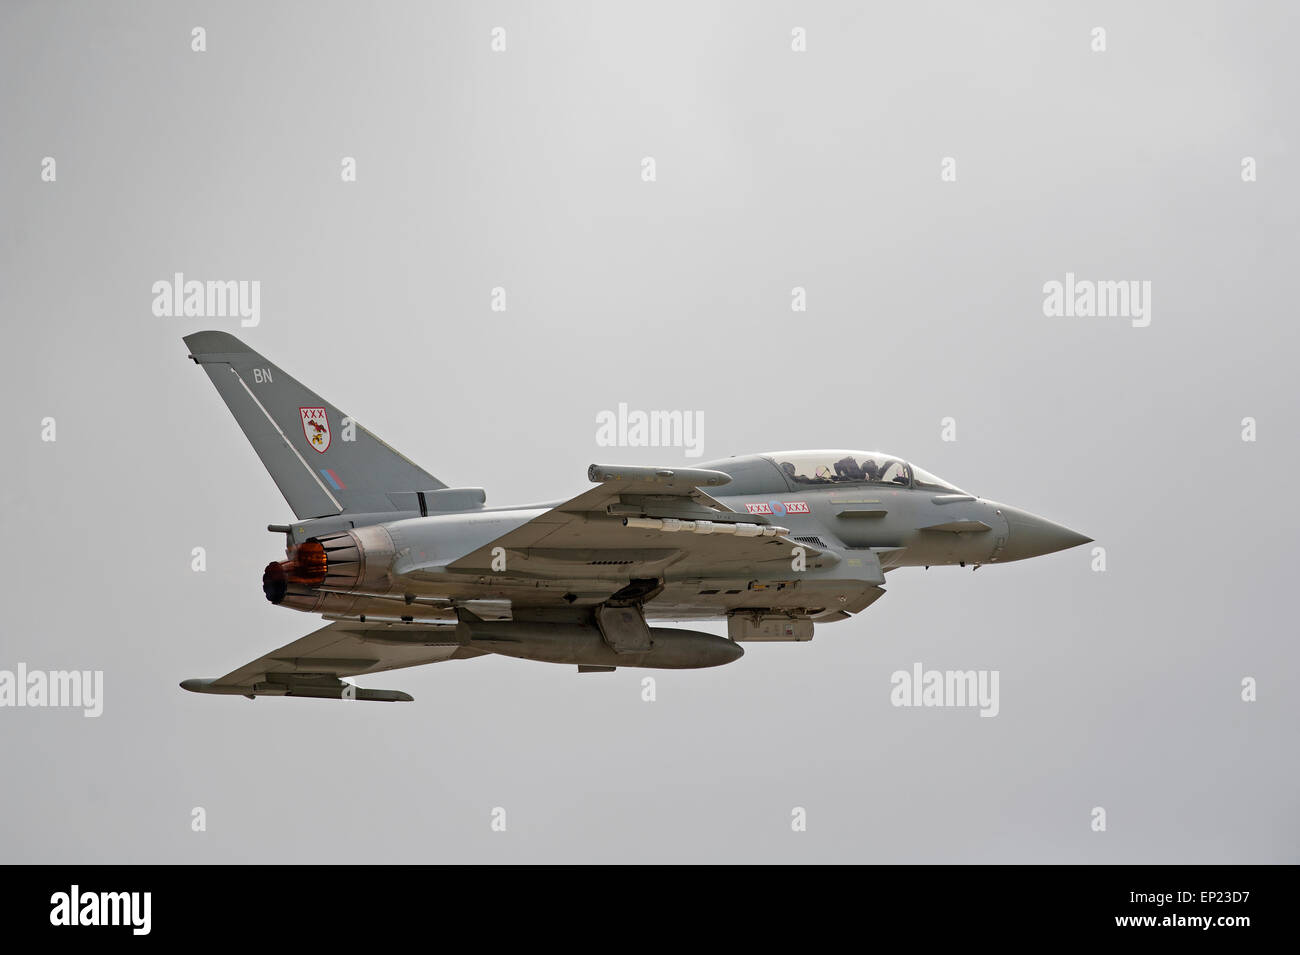 Eurofighter Typhoon Jet Fighter at the RAF Lossiemouth Air Base, Morayshire. Scotland.SCO 9784 - Stock Image